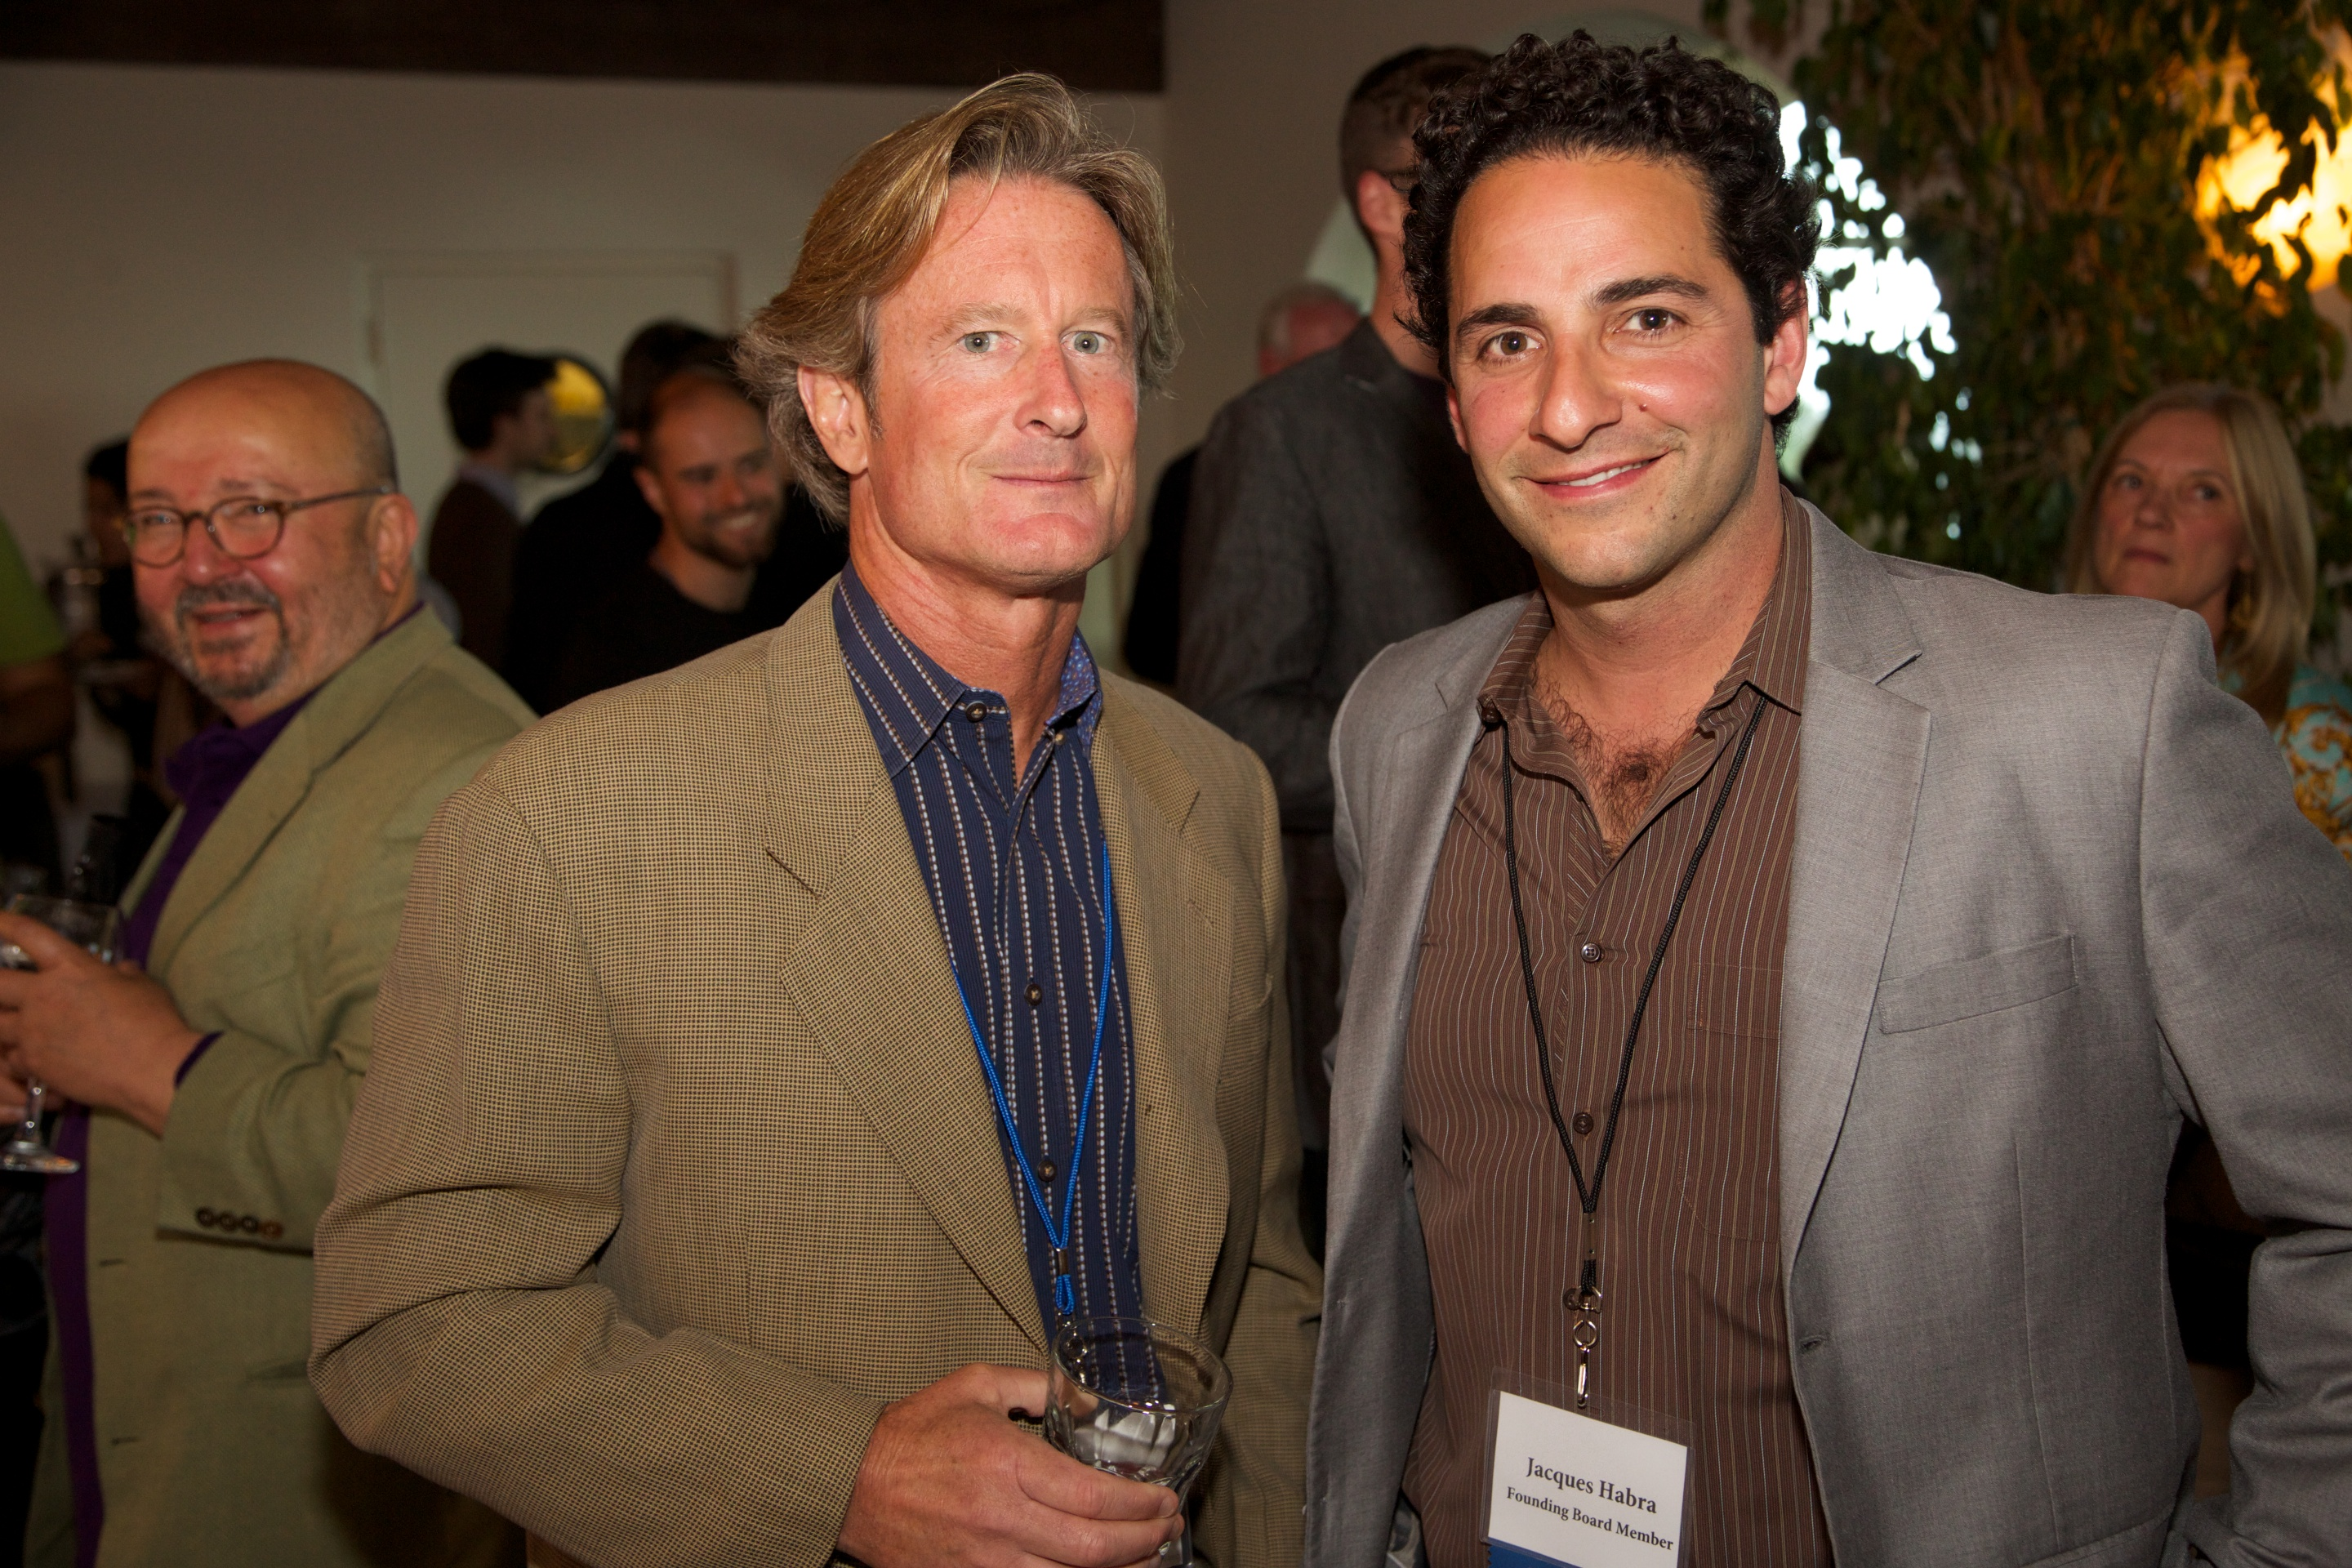 Kevin O'Connor and Jacques Habra at Mentorship Works Networking Event